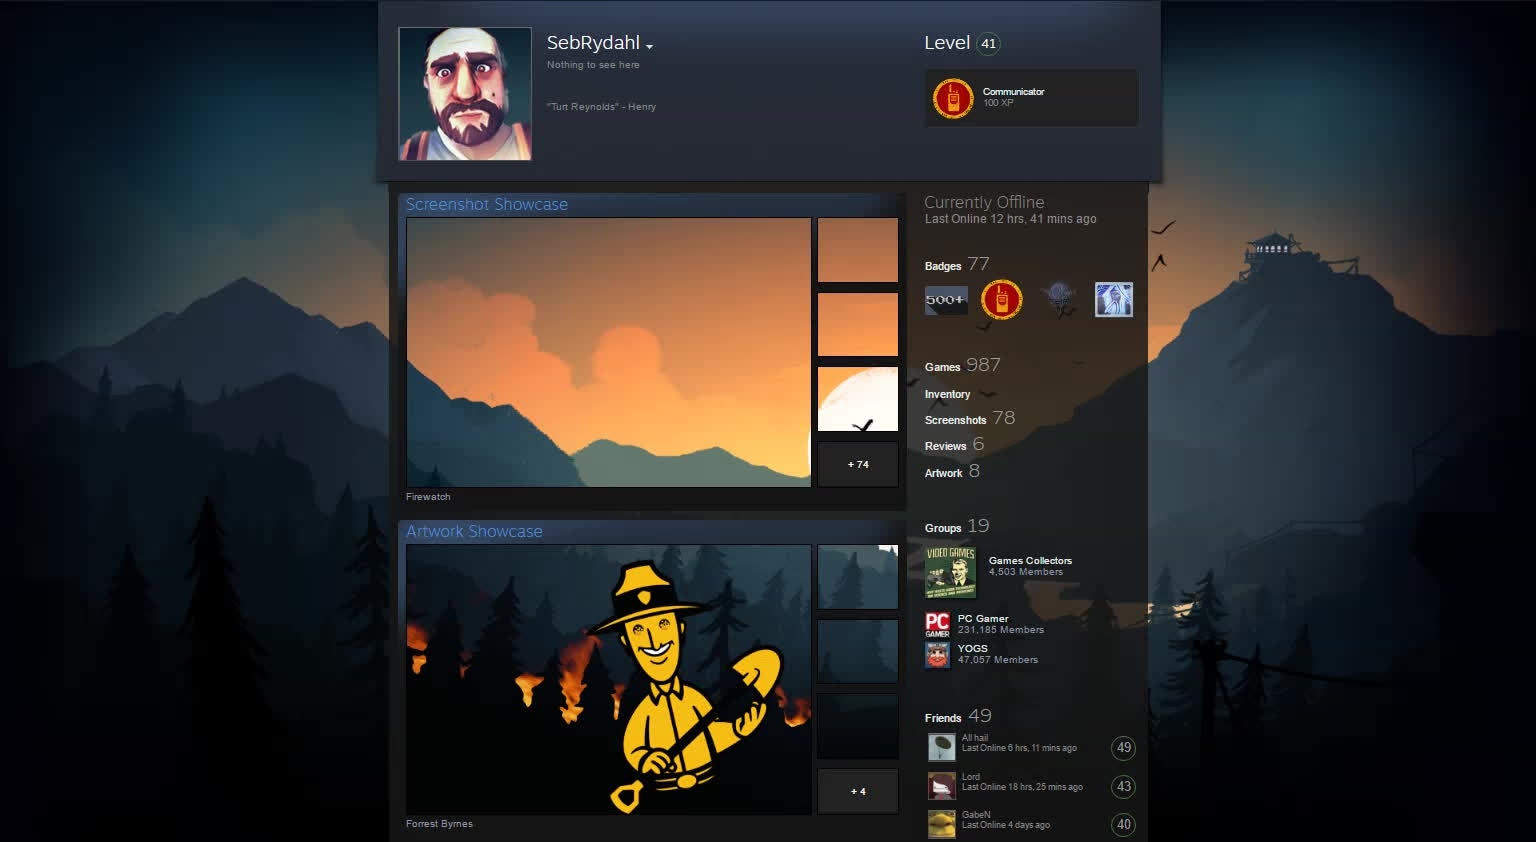 Firewatch, SteamArtworkProfiles, Firewatch Steam Profile GIFs